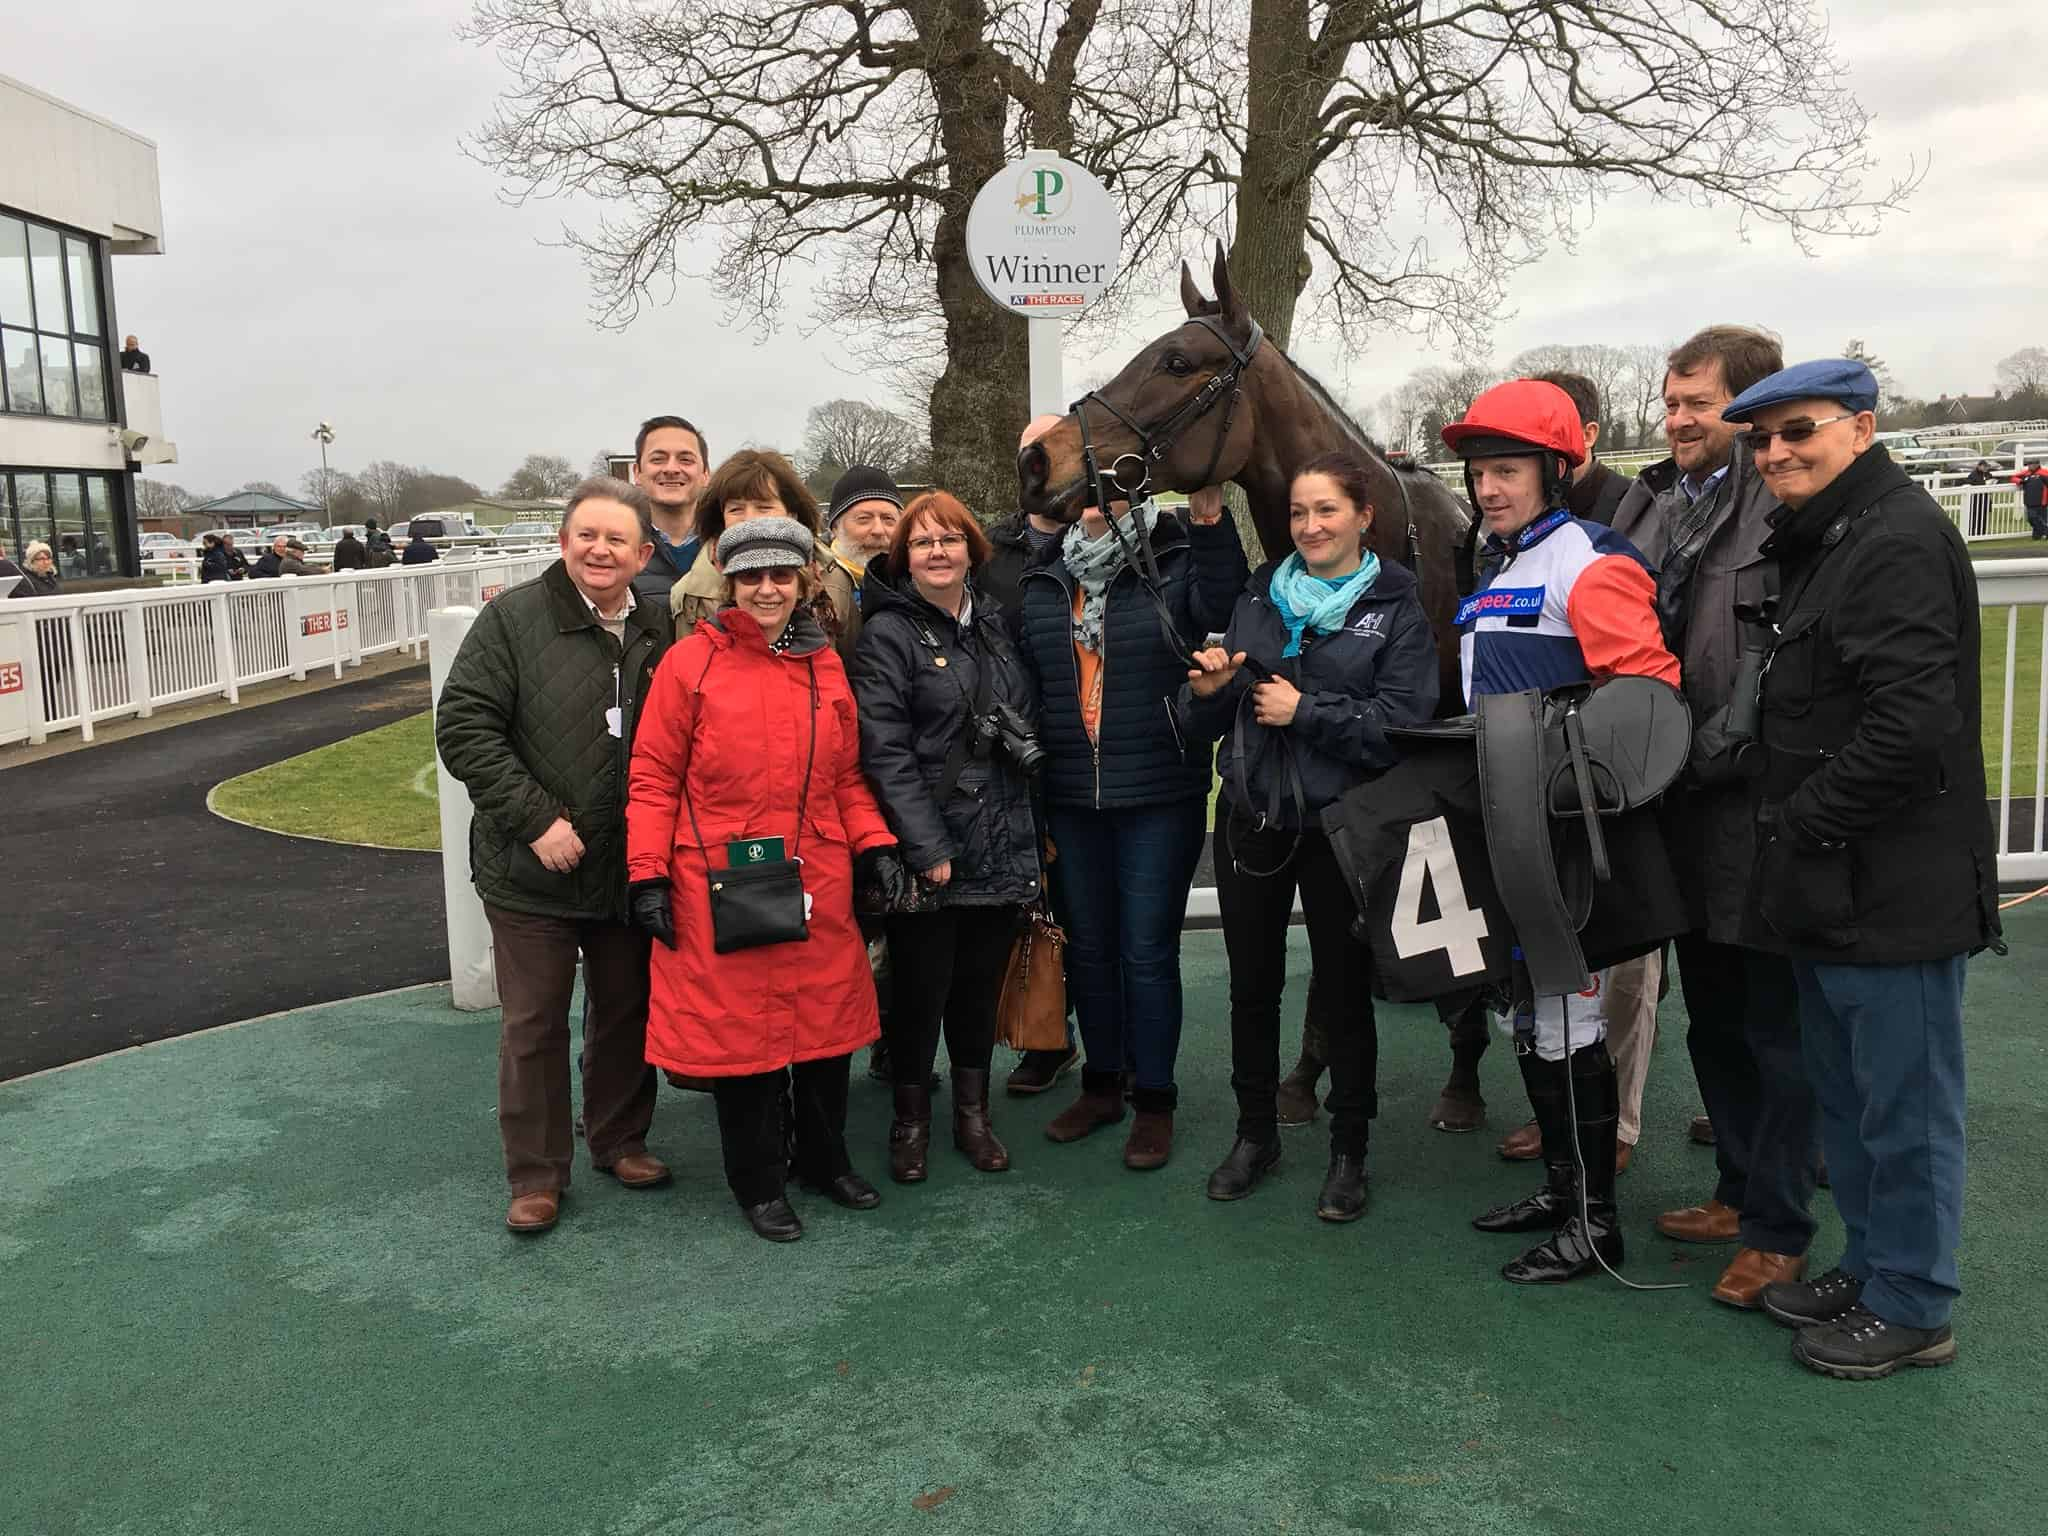 The My Dance syndicate, and jockey Noel Fehily, after her win at Plumpton